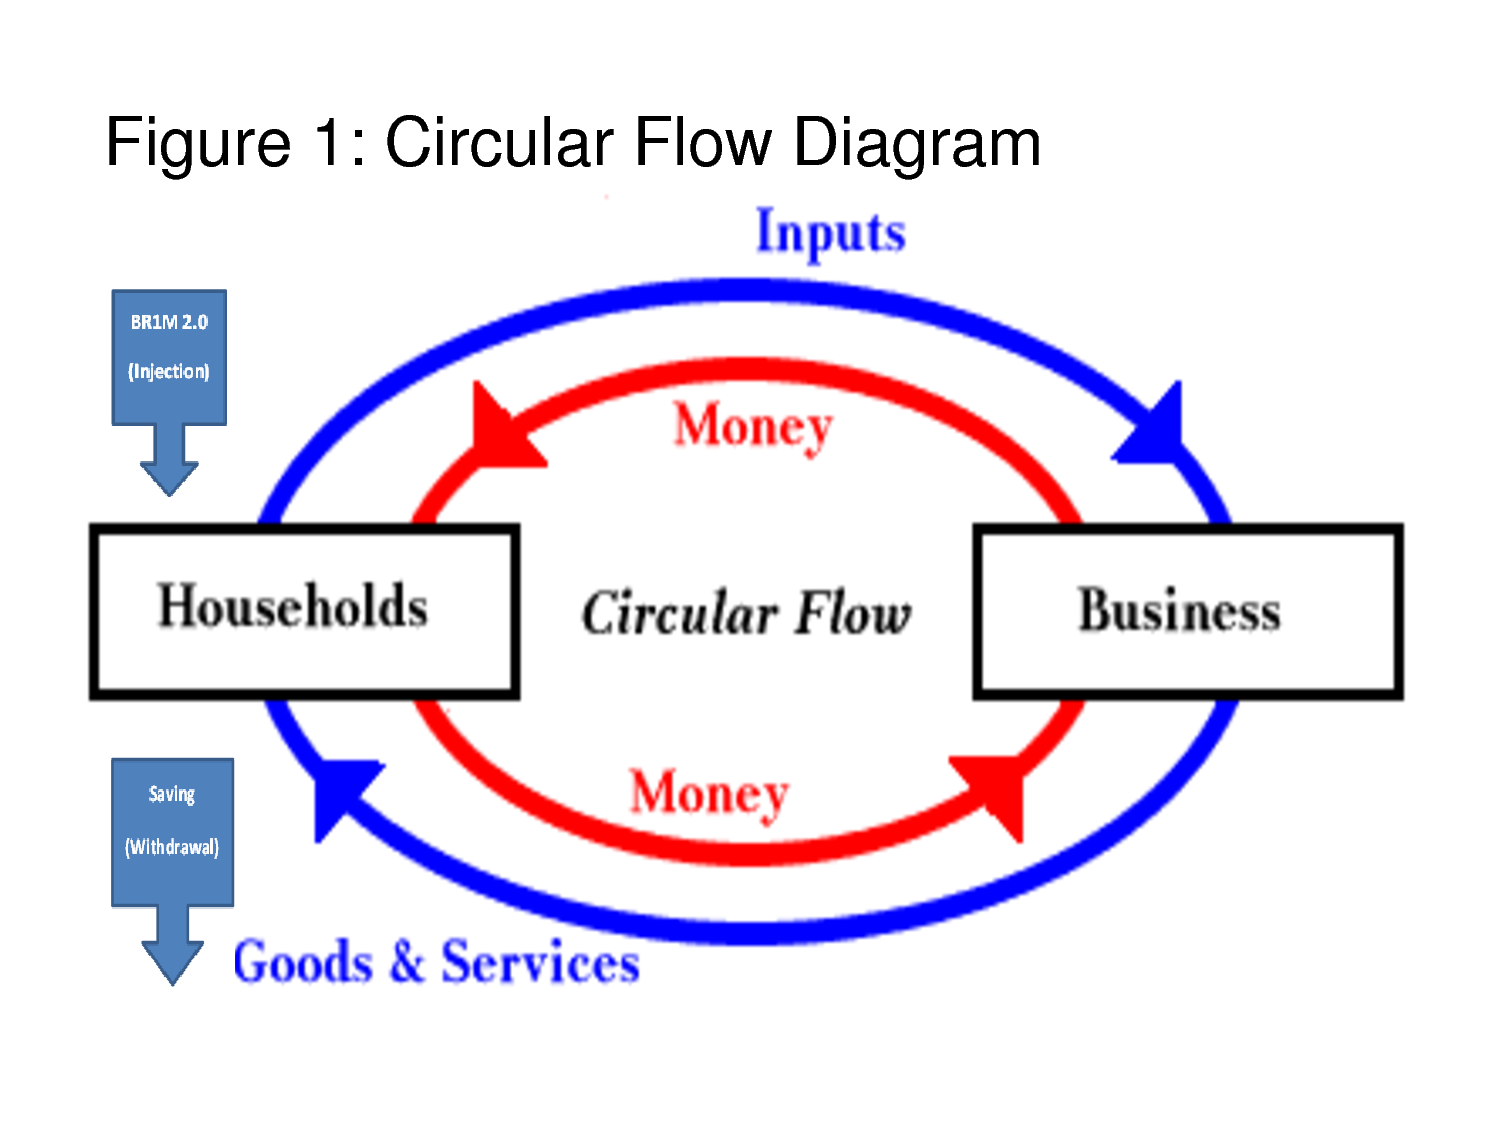 Government Circular Flow Diagram 1988 Ford F150 Belt White Pearl Economics The Effect Of Br1m 2 On Gdp